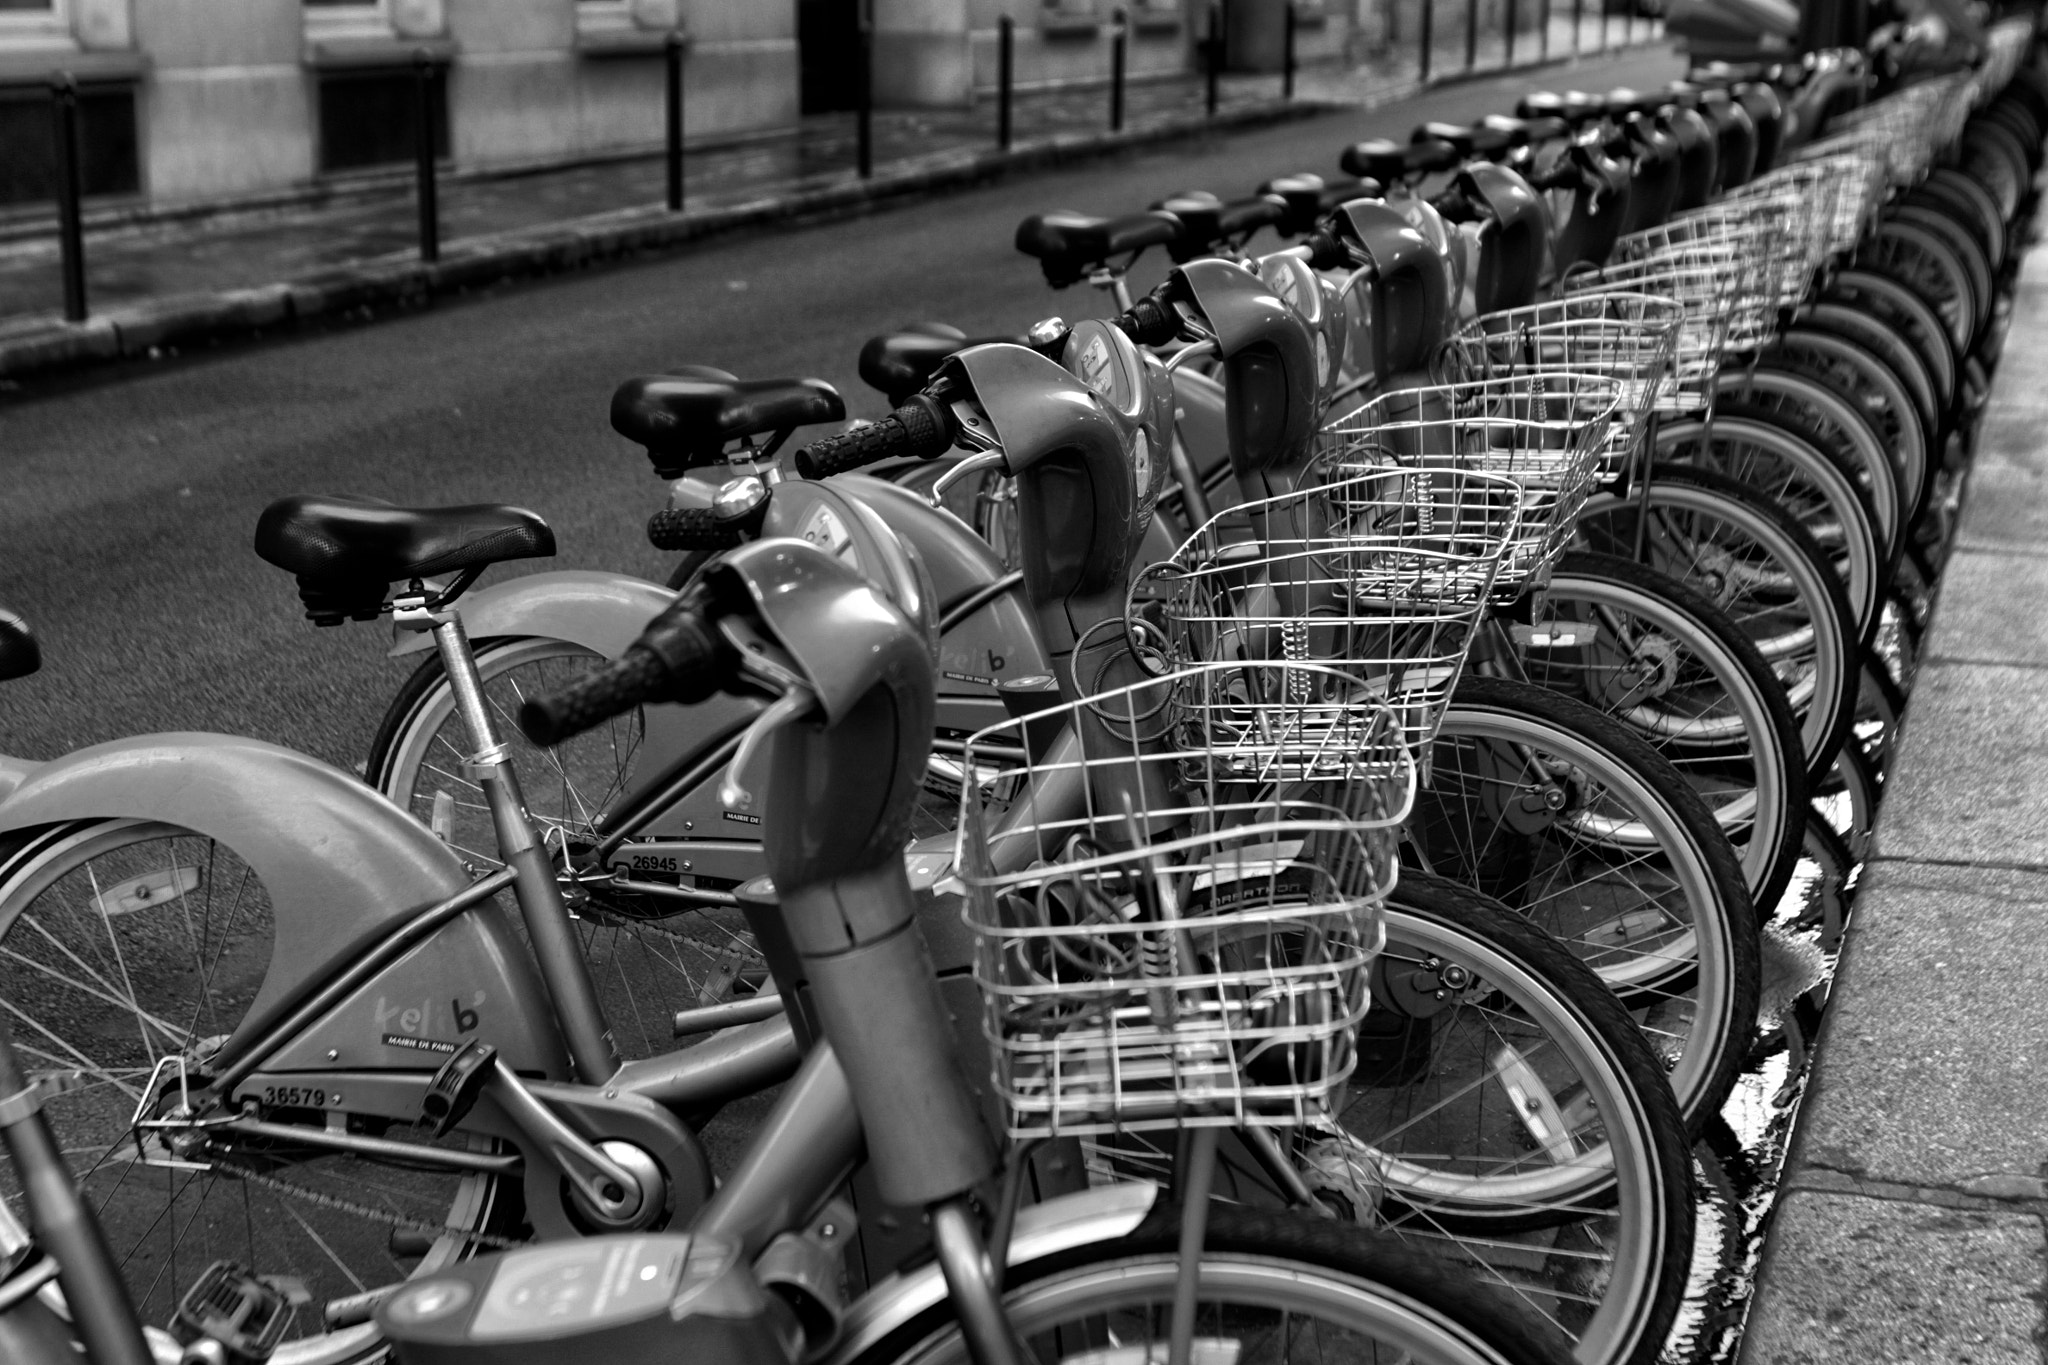 Photograph France - Paris bicycles by Piotr Kanthak on 500px